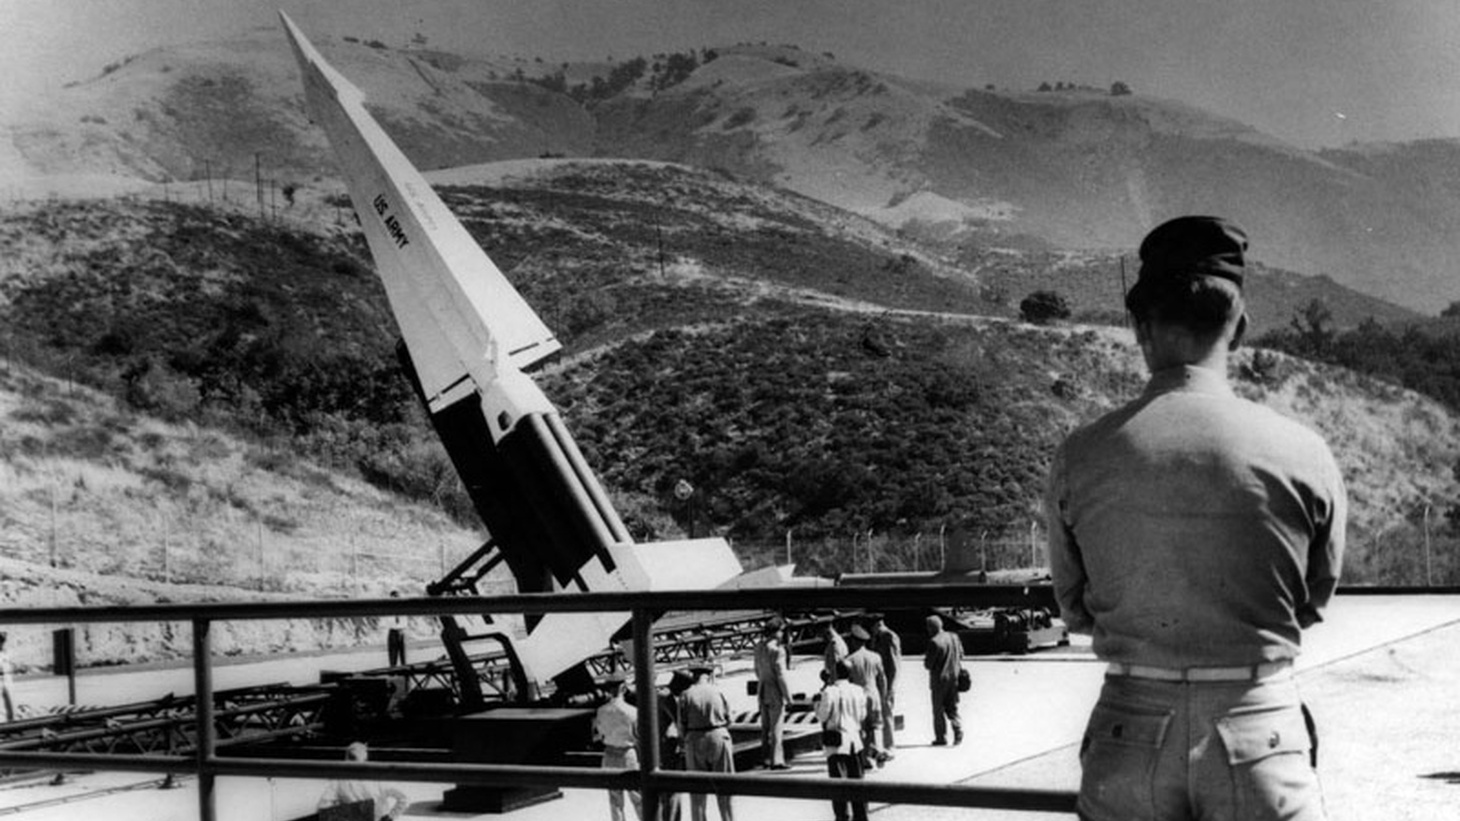 """Visit one of 16 Nike Missile Control Sites operated by the Army from the 1950s to the 1970s. These batteries circled the Los Angeles basin in what was called a """"Ring of Supersonic Steel."""""""